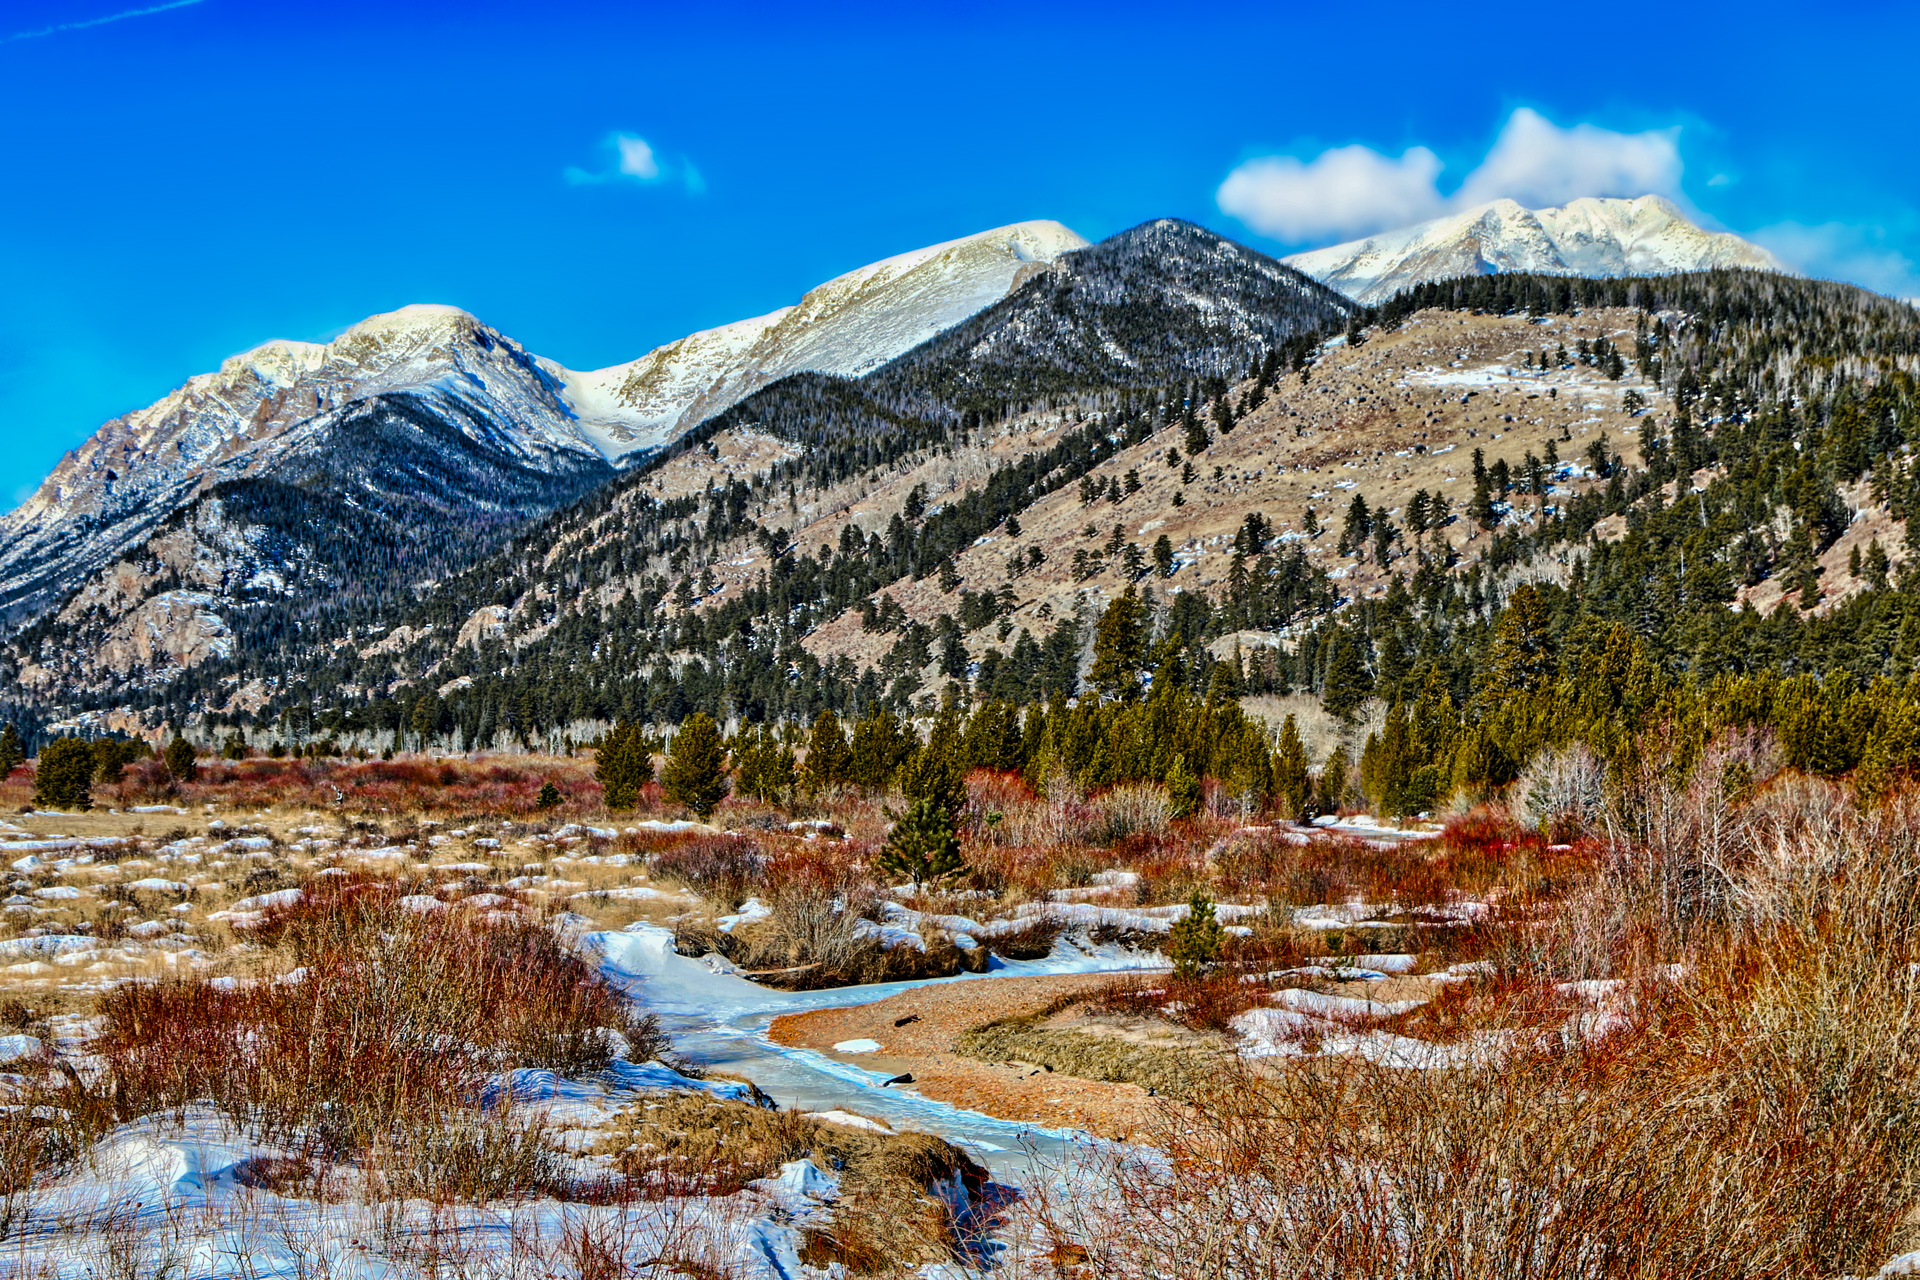 One of the more popular areas during the summer in Rocky Mountain National Park is the Alluvial Fan, which sits in Horseshoe Park, near the start of Fall River Road. During the winter, solitude can occasionally be found in this peaceful valley.